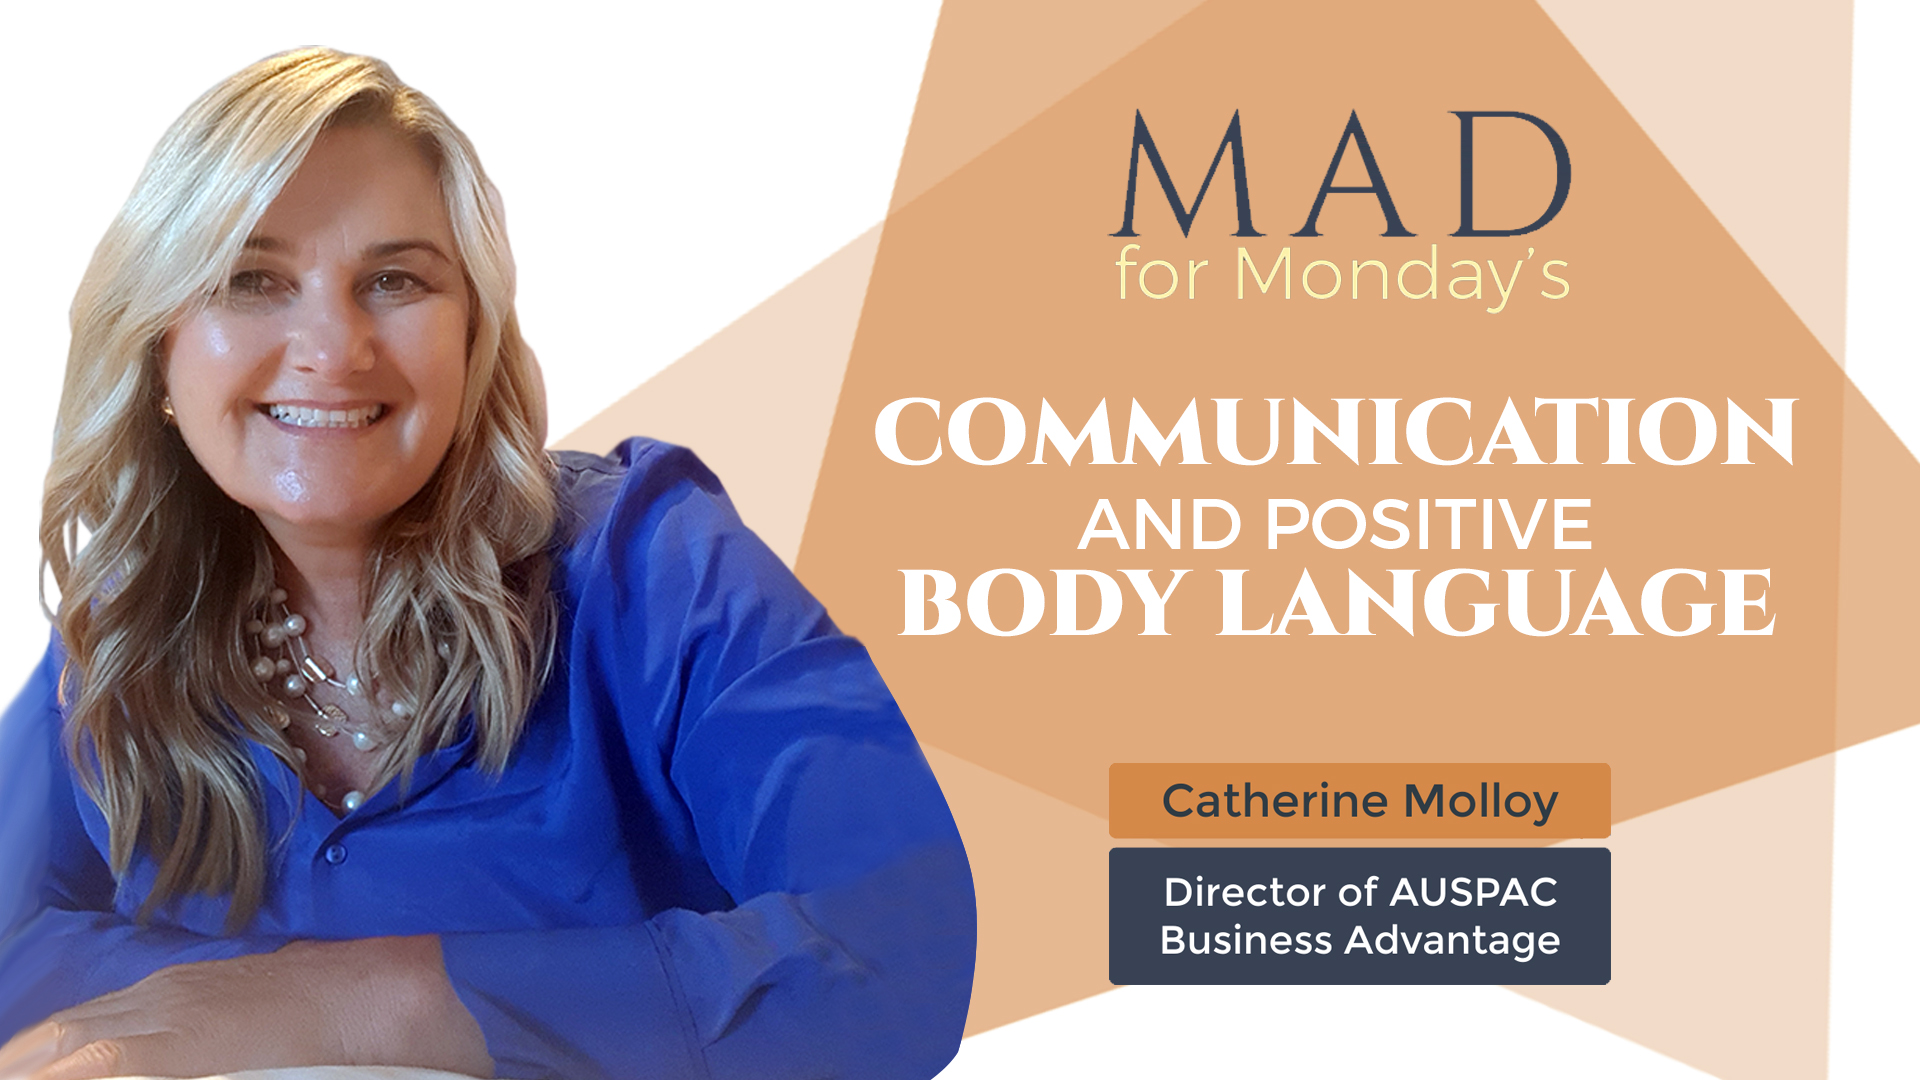 Mad for Monday's – Communication and Positive Body Language